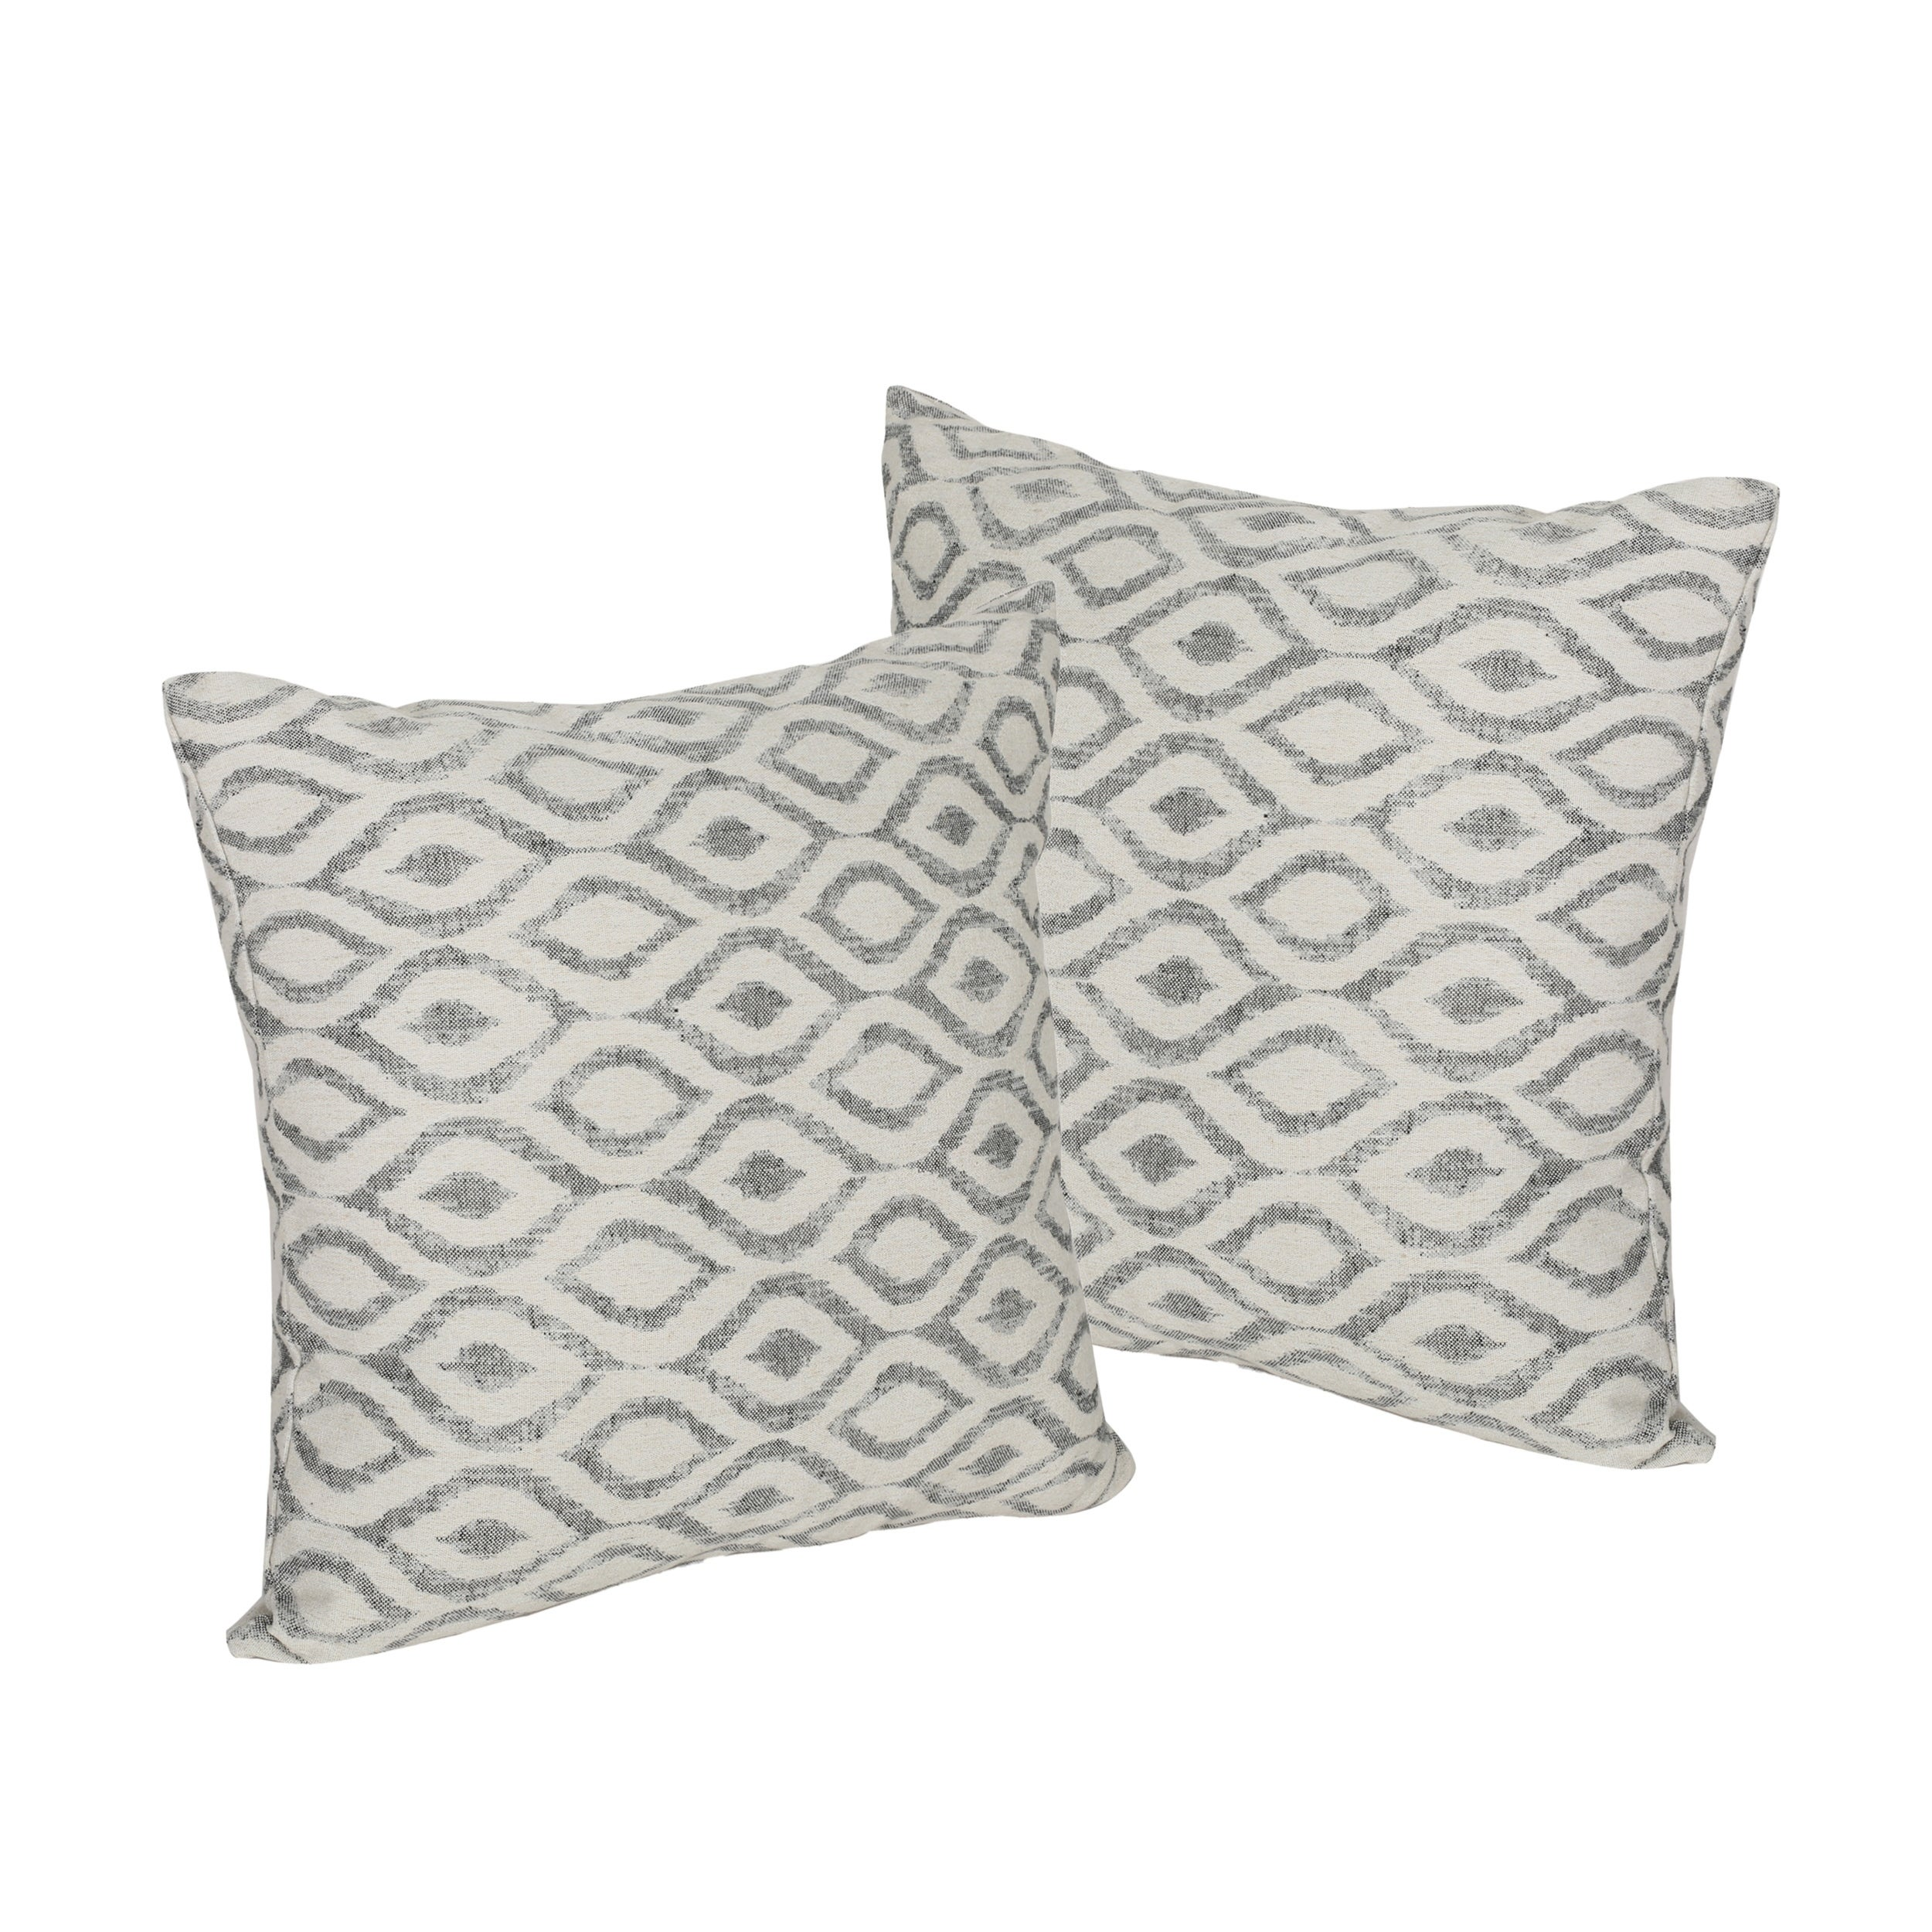 Fabric For Pillow Covers.Arellano Modern Fabric Throw Pillow Cover No Filling Set Of 2 By Christopher Knight Home